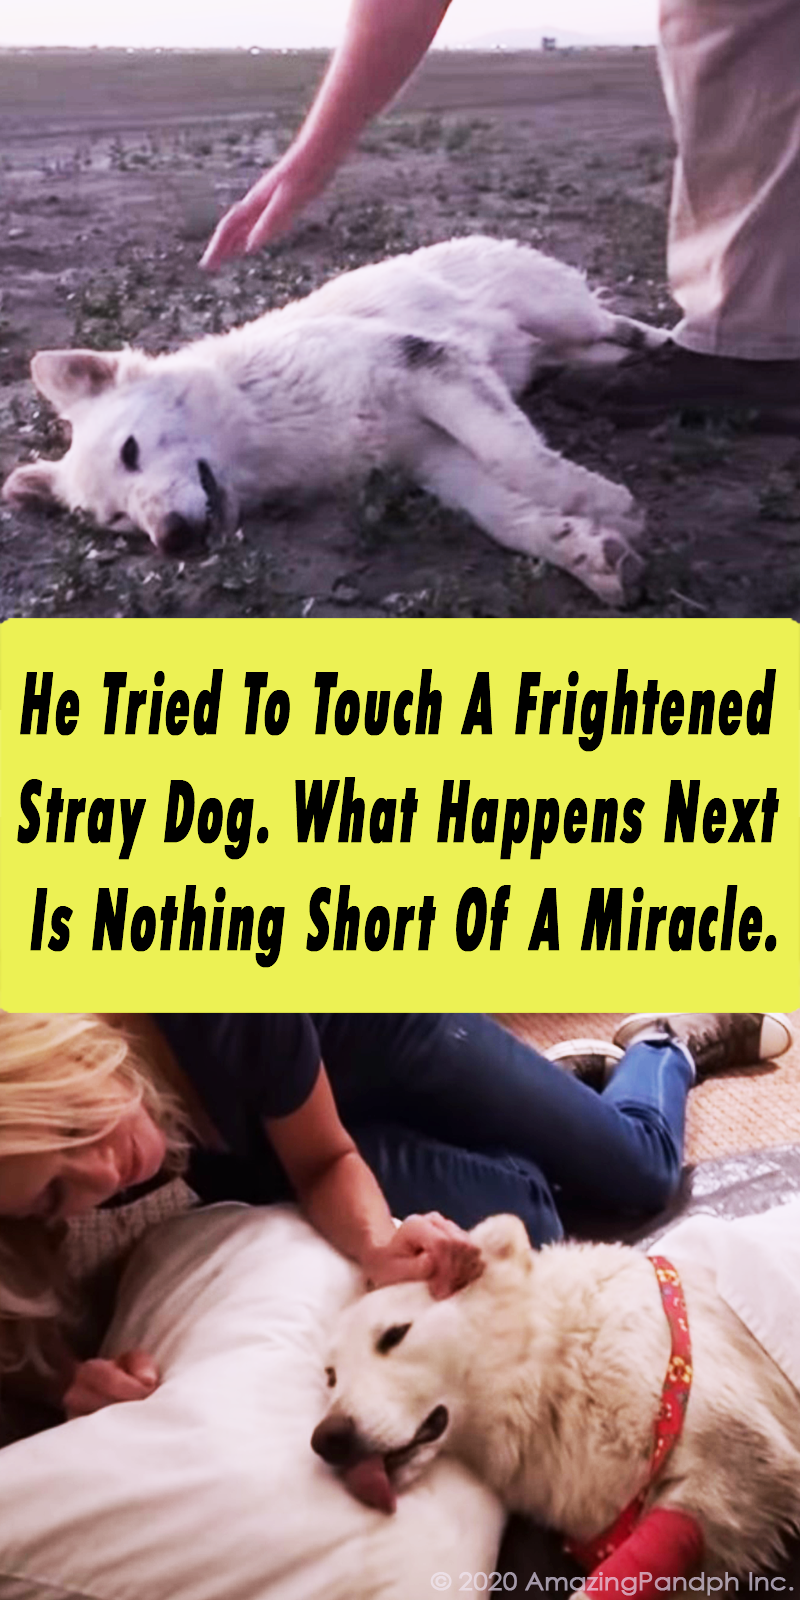 animals, viral, dogs, rescue, save, life, helping, pets, puppy, accident, tar, drenched,